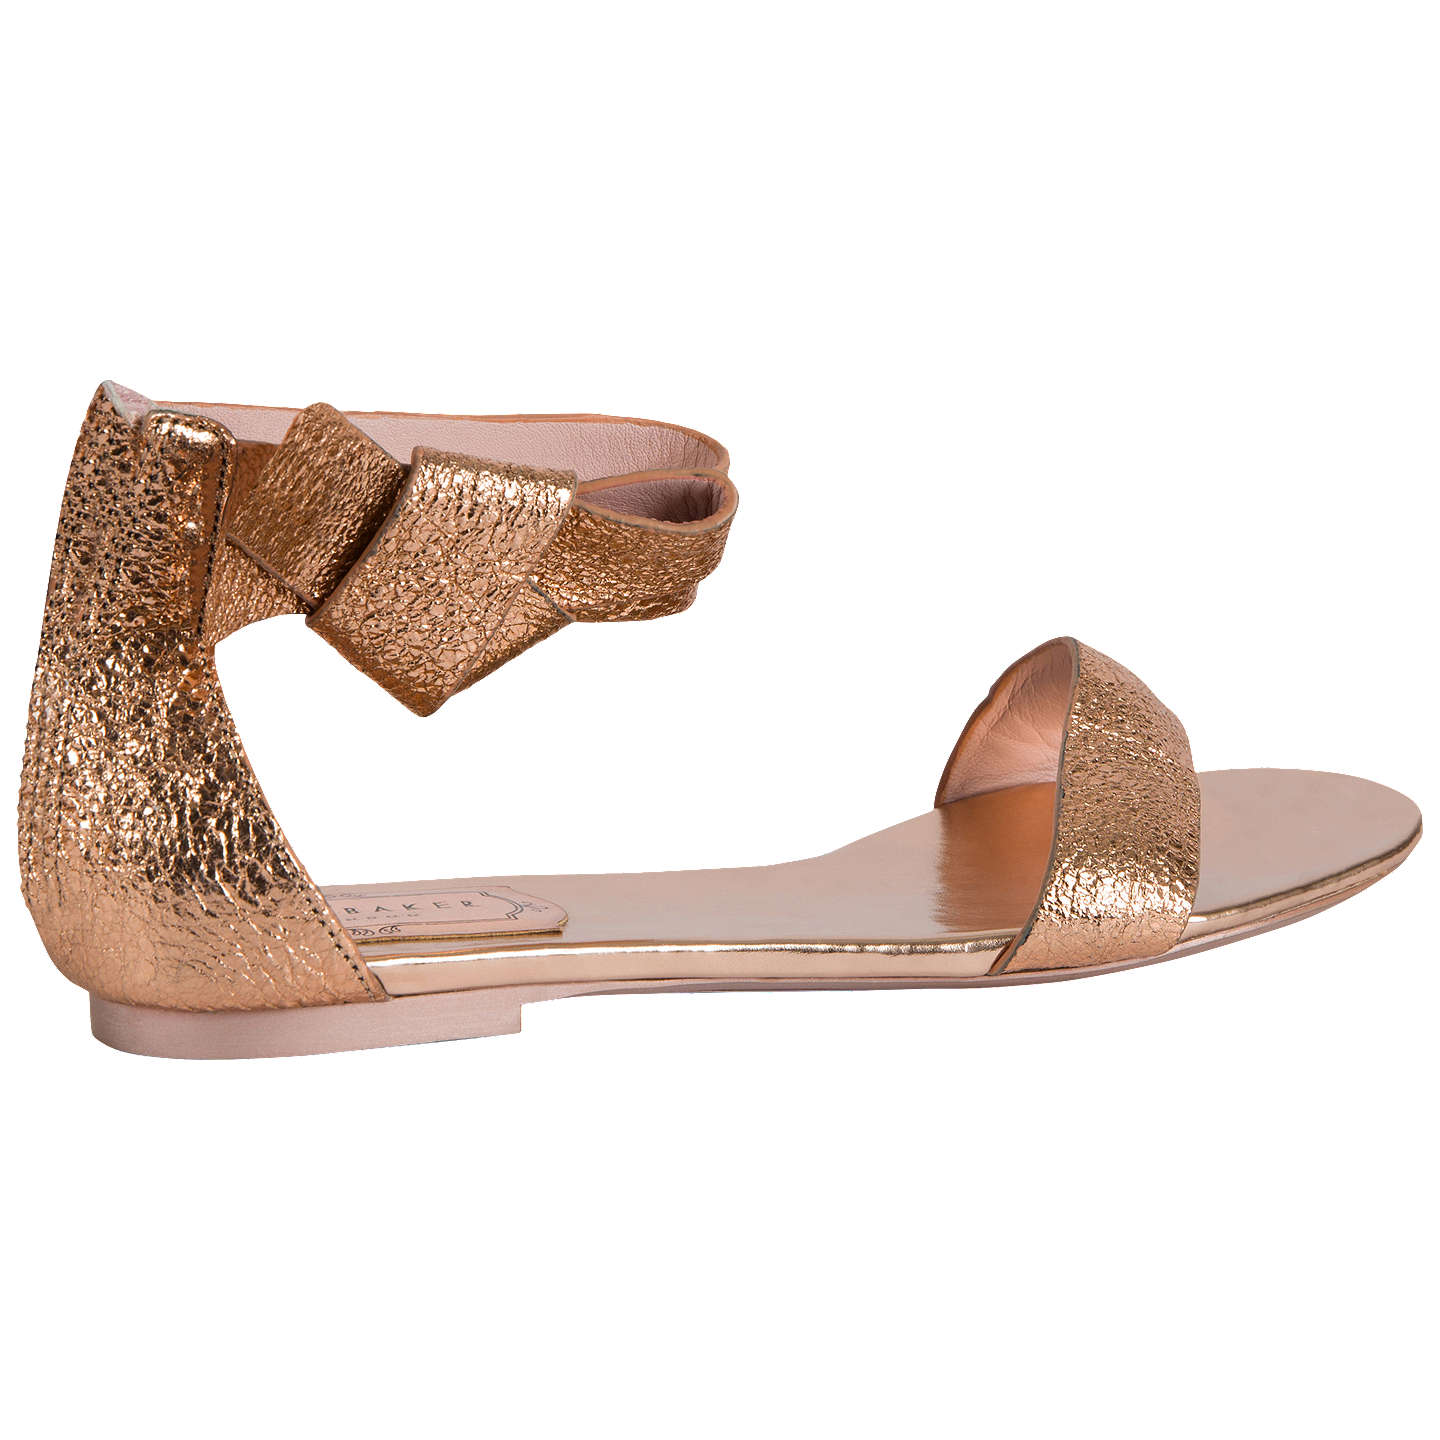 AFFII - Sandals - rose gold Buy Cheap Websites Sast Online Best Selling Outlet In China Sale Low Shipping Fee MhJd77REH